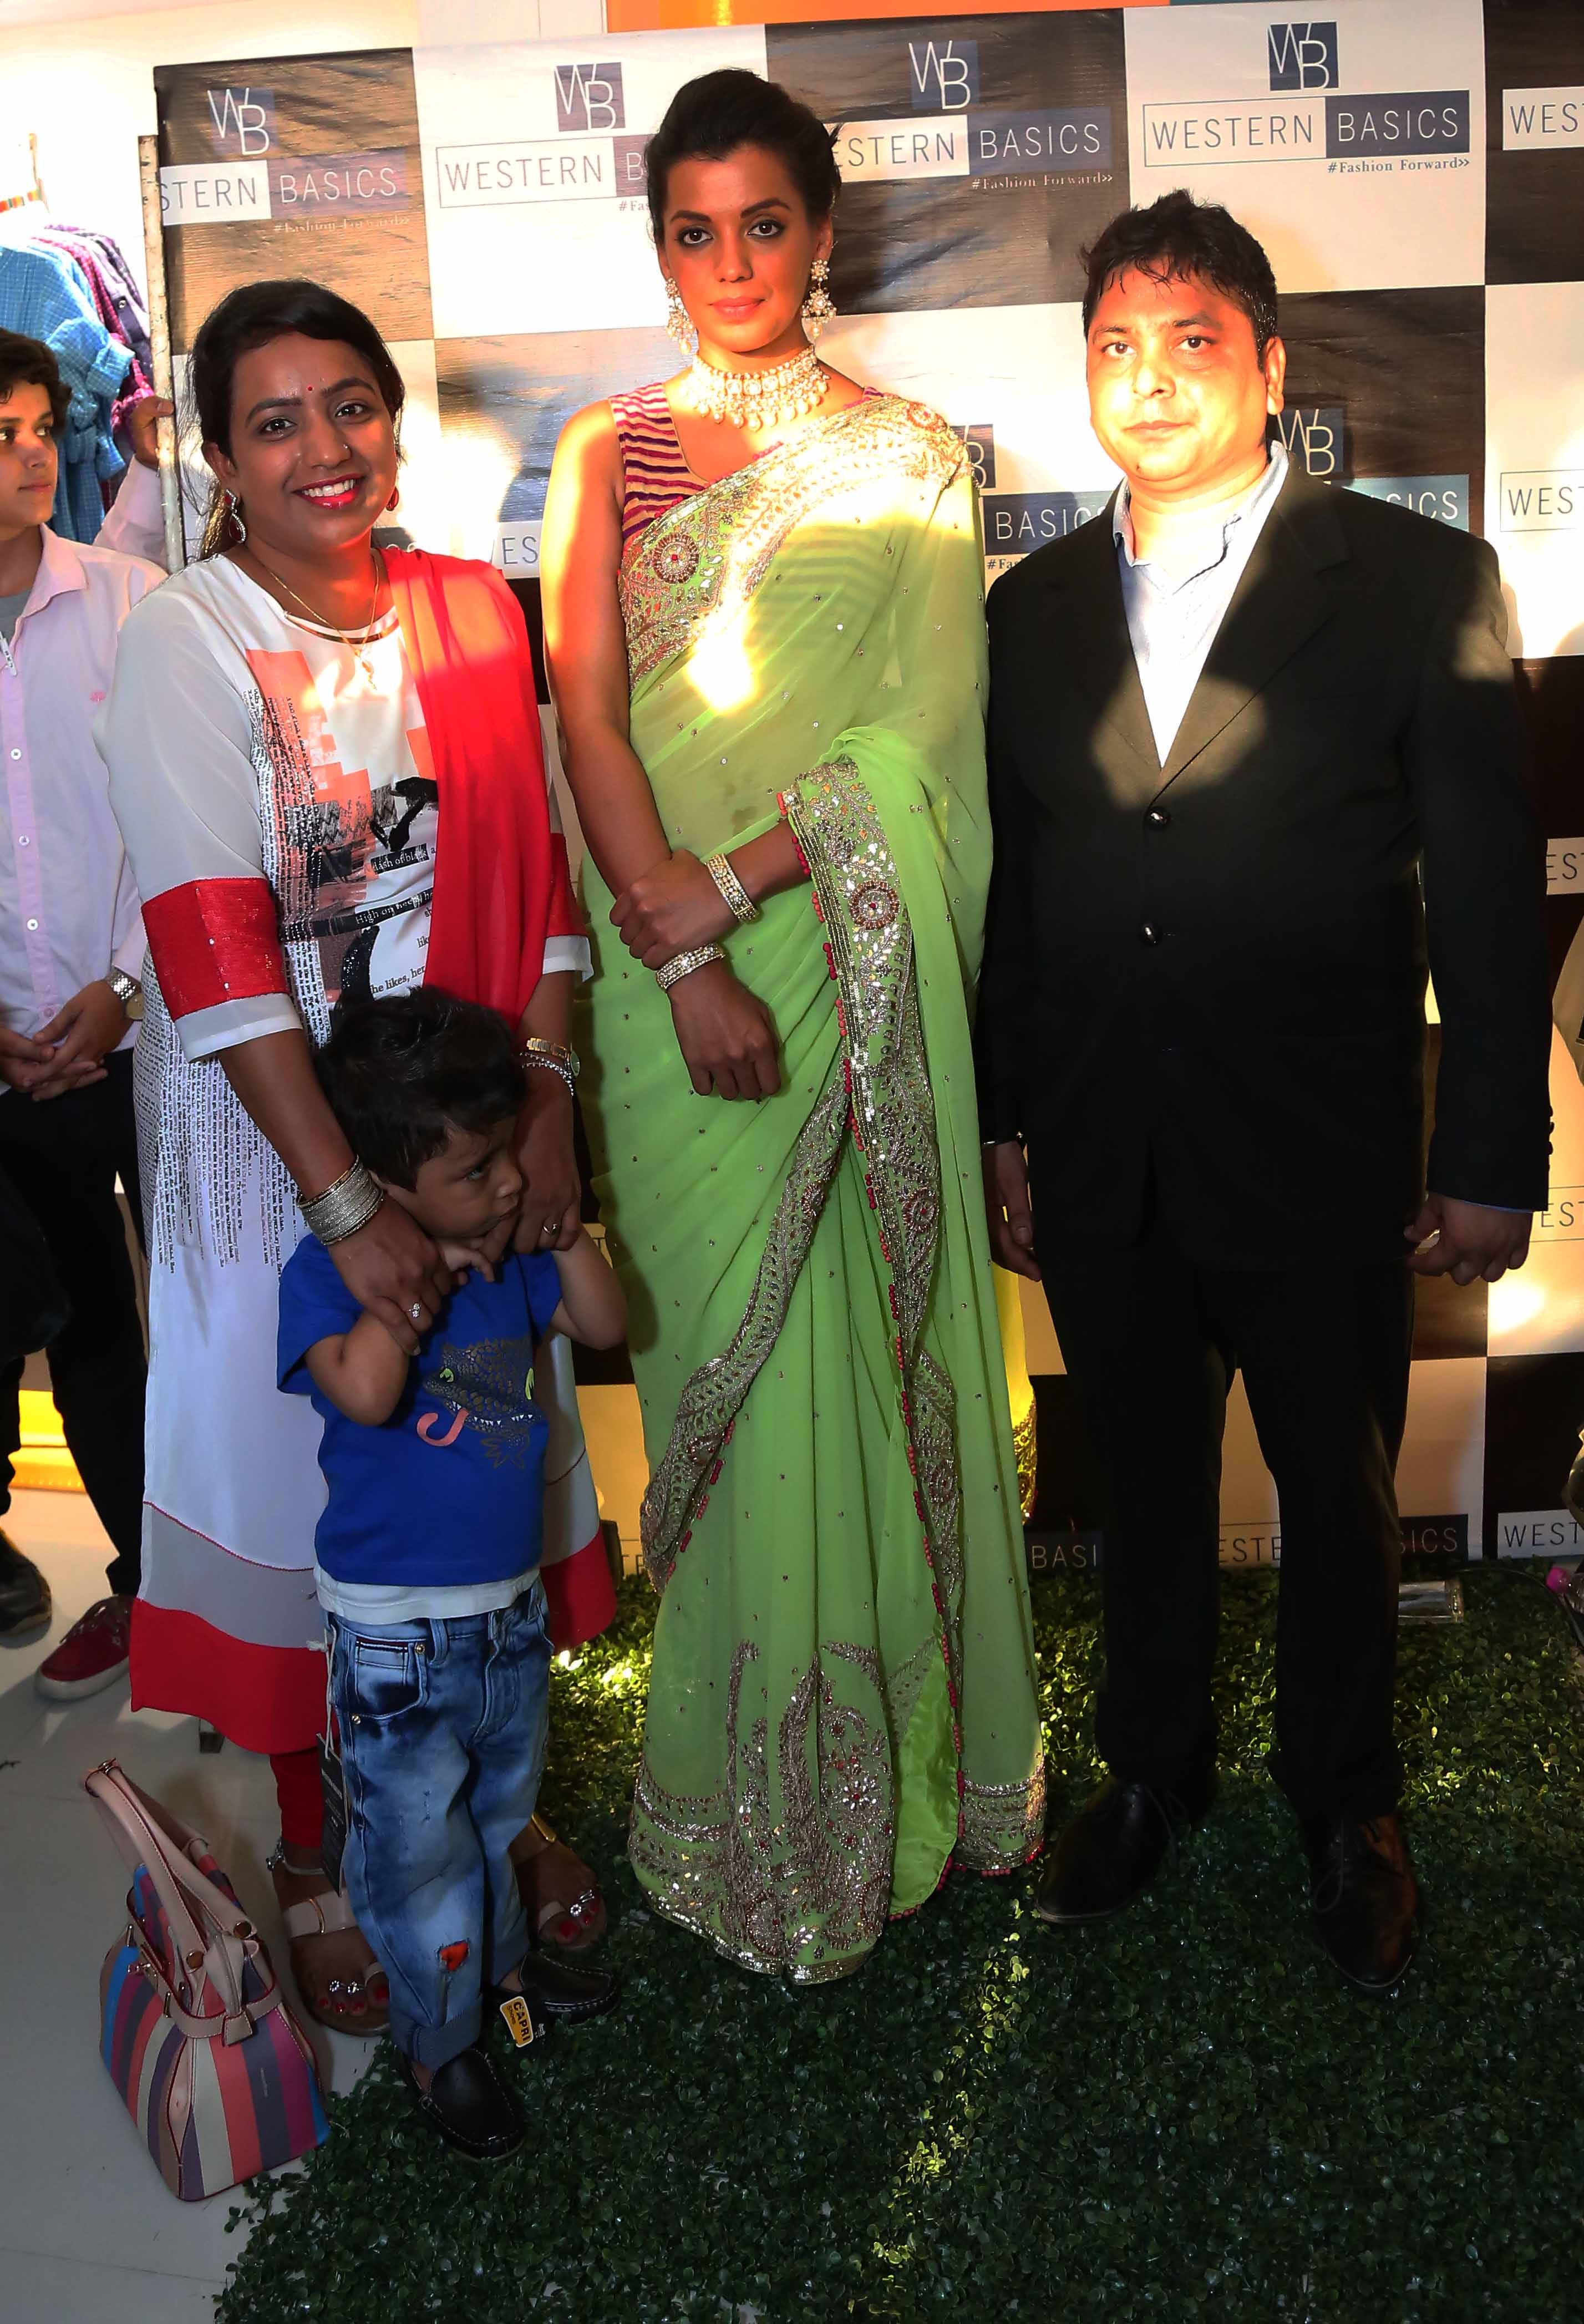 Mugdha-Godse-with-owner-Mr.-Sunil-Singh-his-wife-at-the-inauguration-of-Western-Basics-Kids-Fashion-Wear-Store.